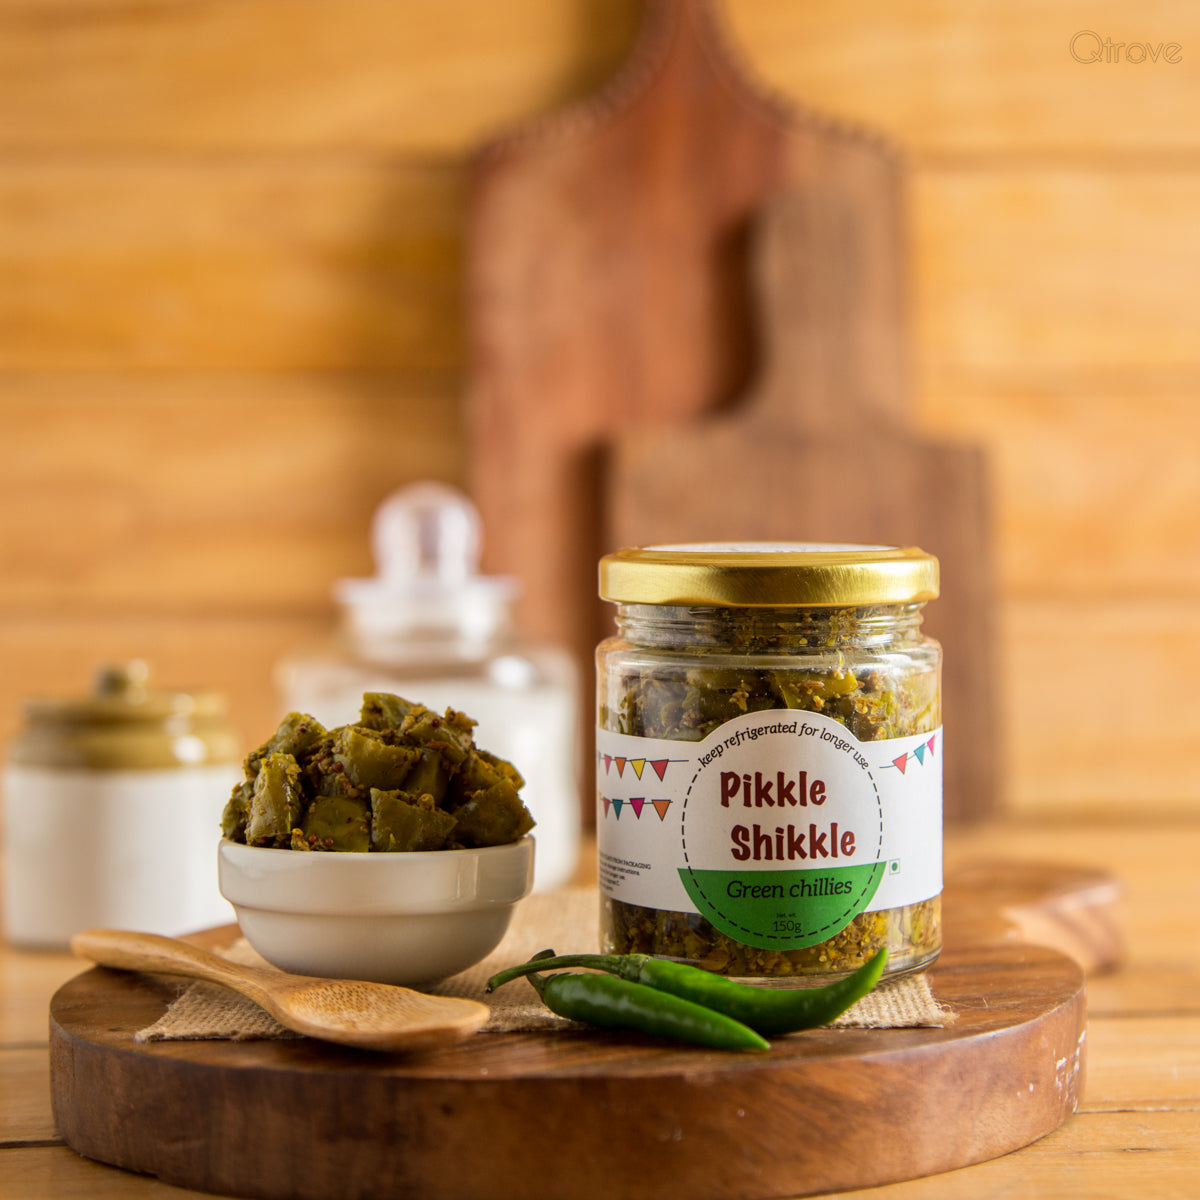 Chilli Pickle -Homemade & All Natural (Pack of 2)